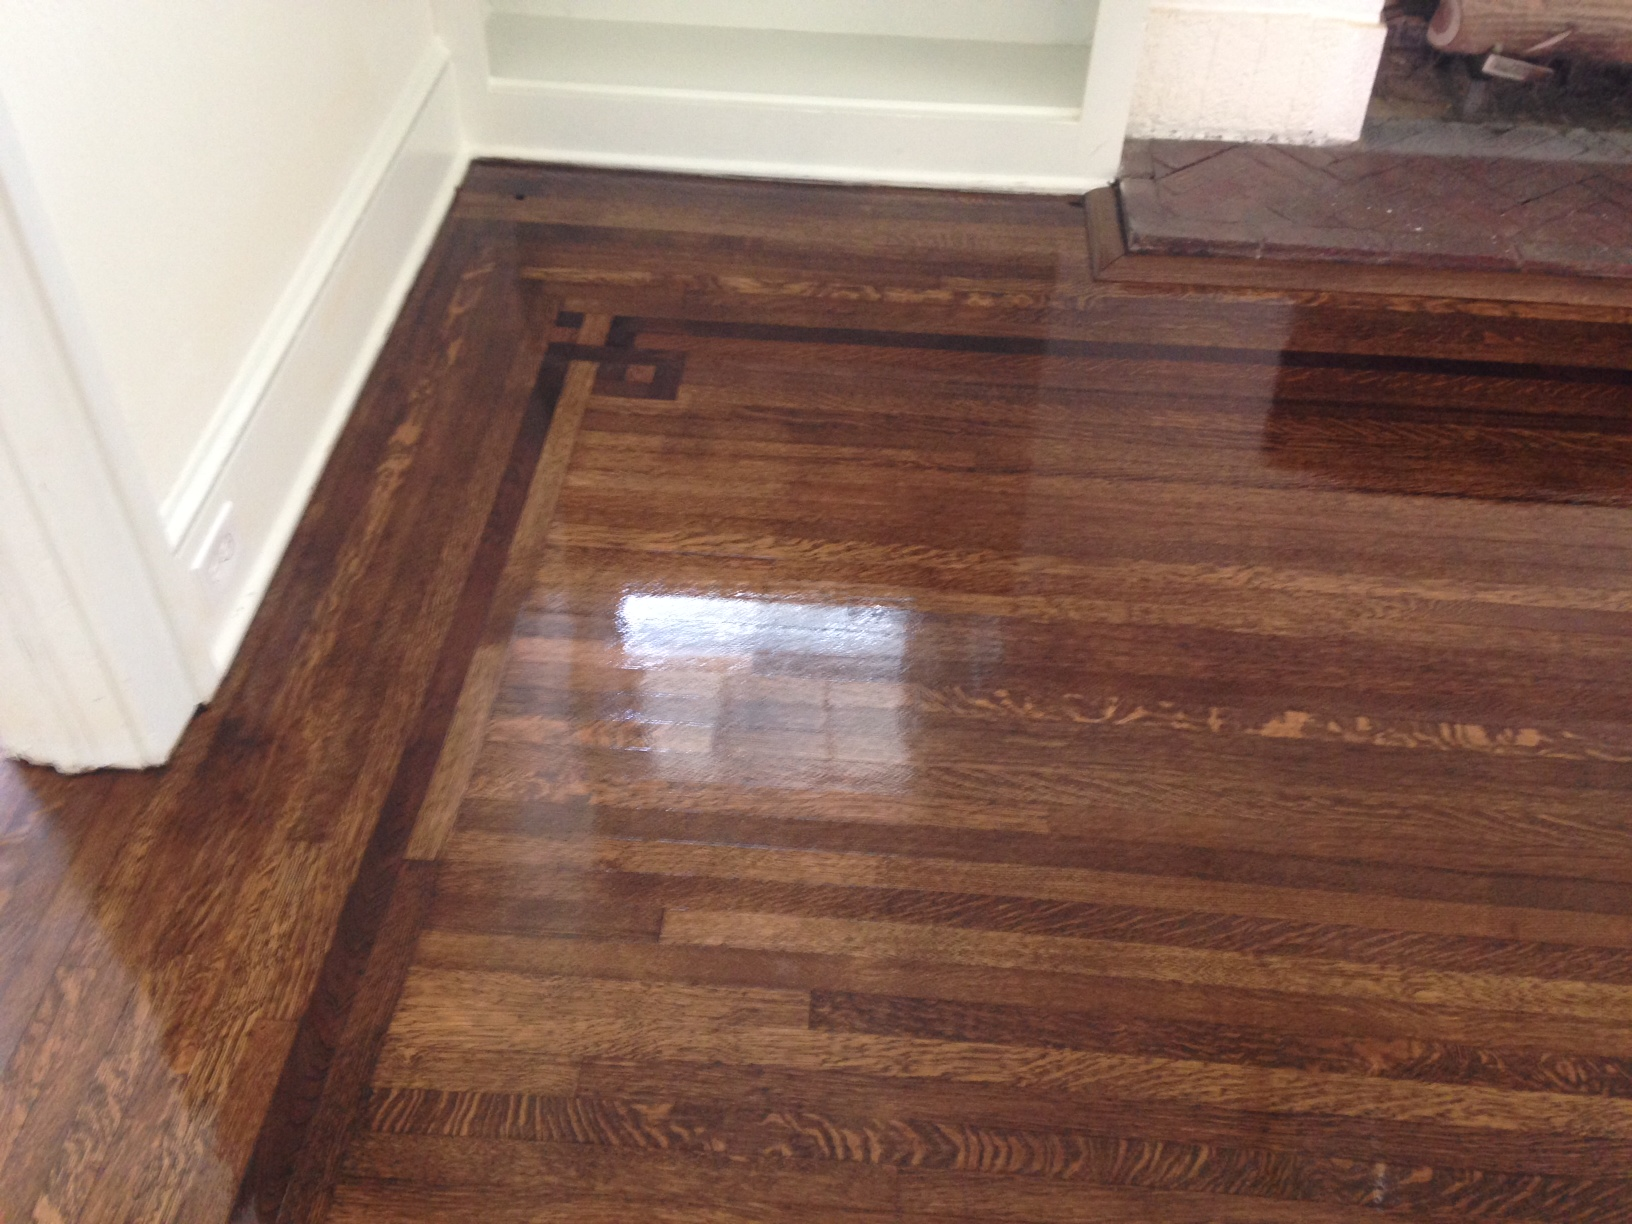 Elegant Refinished Old Hardwood Floors Shine As Finish Dries